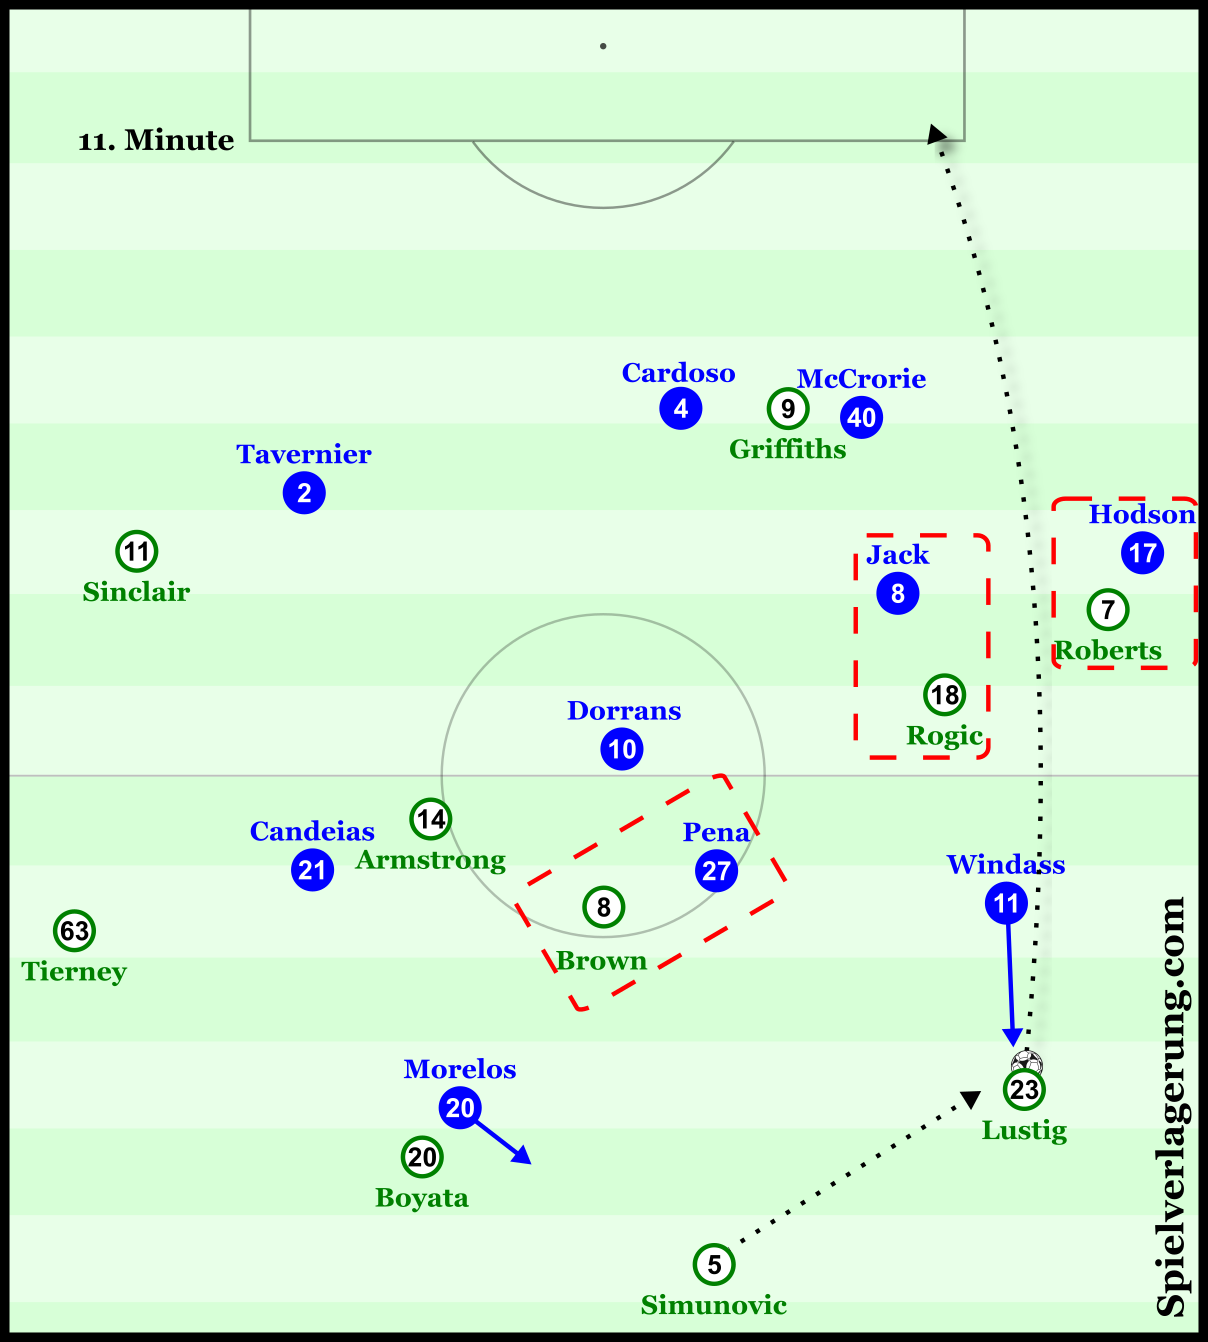 Windass' intense pressing of Lustig, coupled with central man-orientations, forces the defender into a low-percentage channel ball.